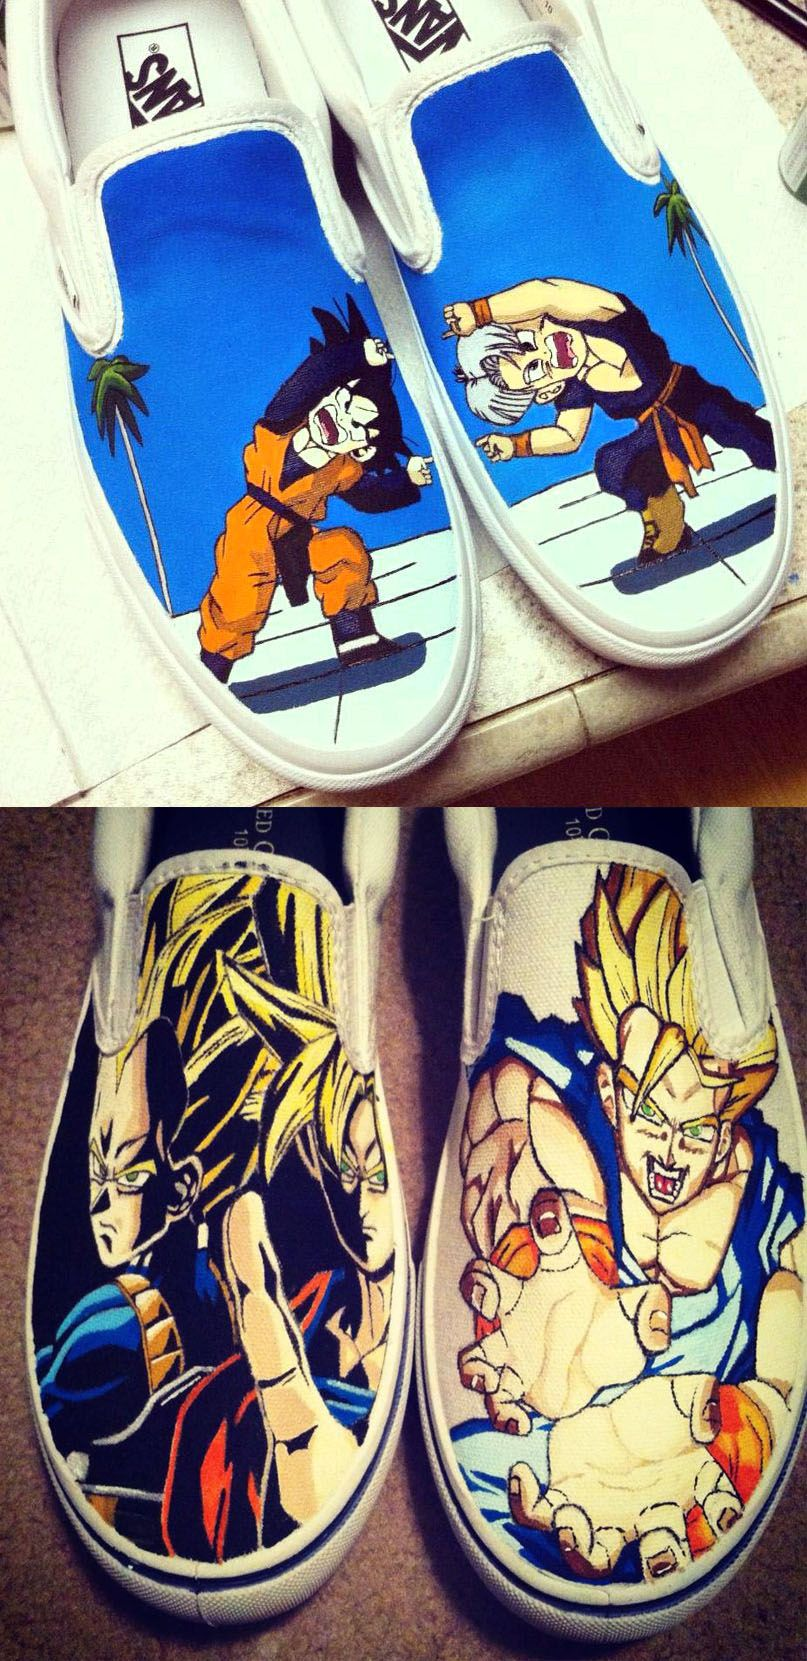 20ed143a8f0f I need the top pair of shoes with goten and trunks fusioning Dragon Ball Z